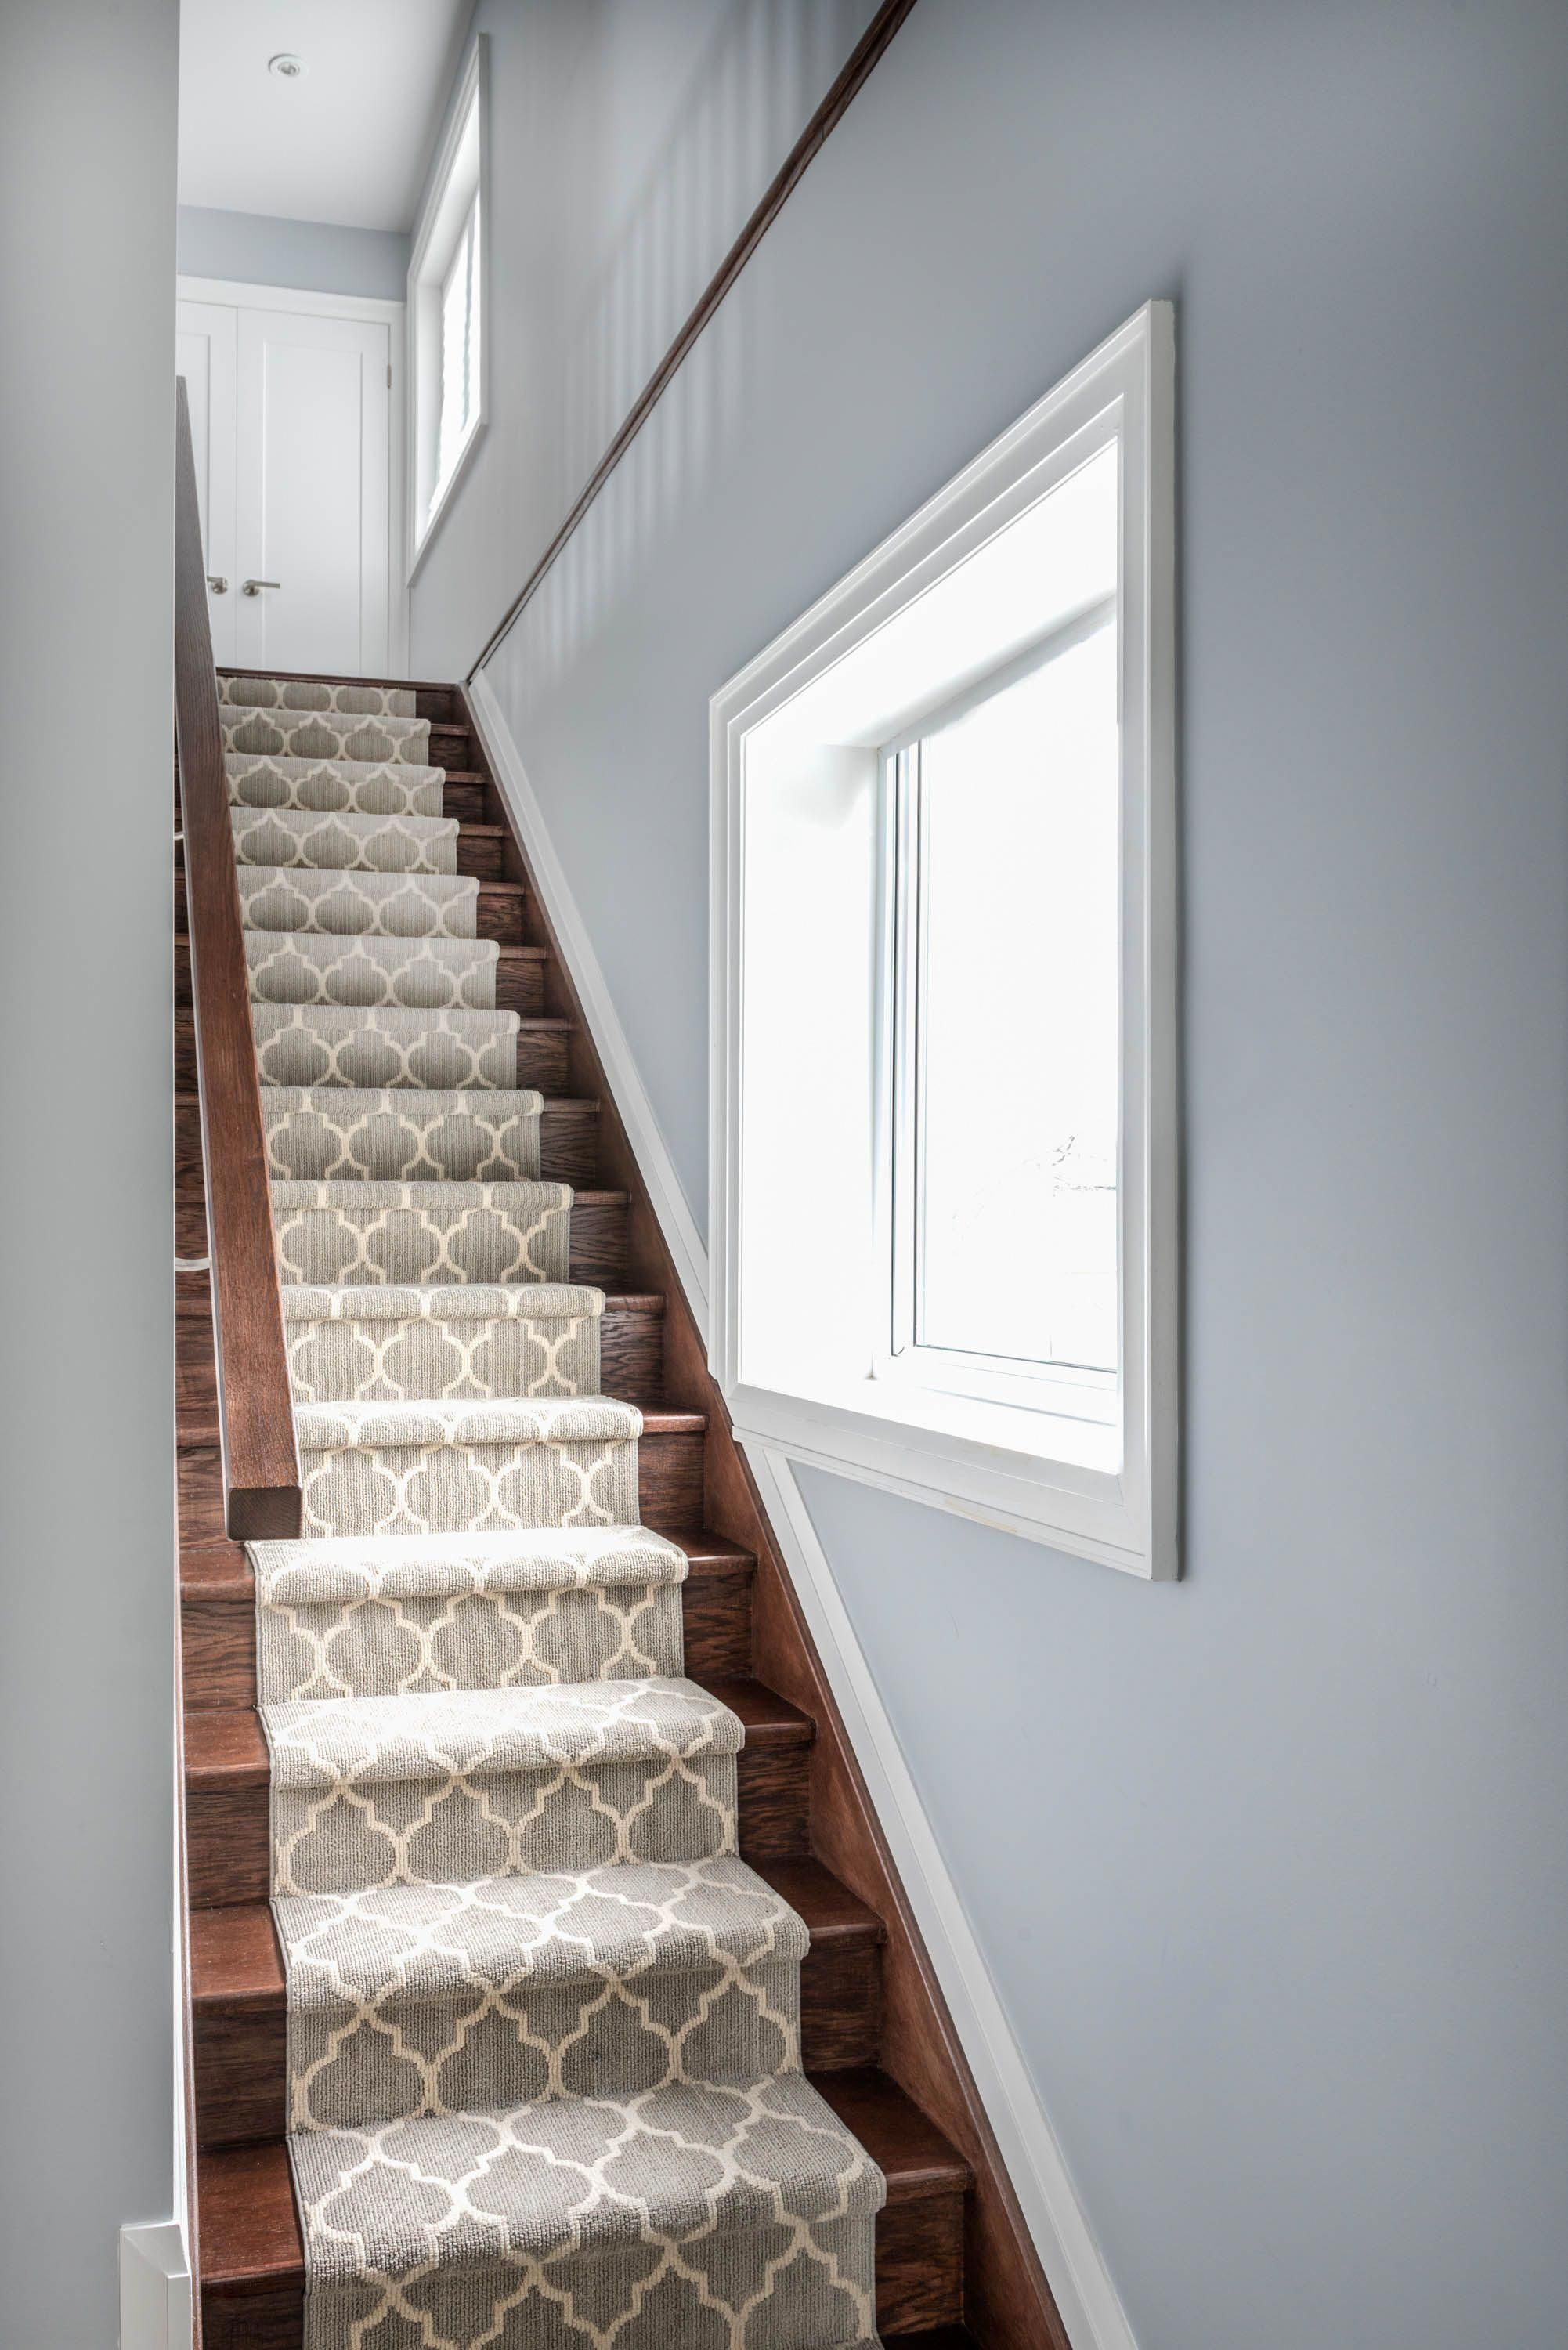 Best Carpet Runners For Stairs Lowes Carpetrunnergumtreeperth Stairwayswithcarpetrunners Wooden 400 x 300